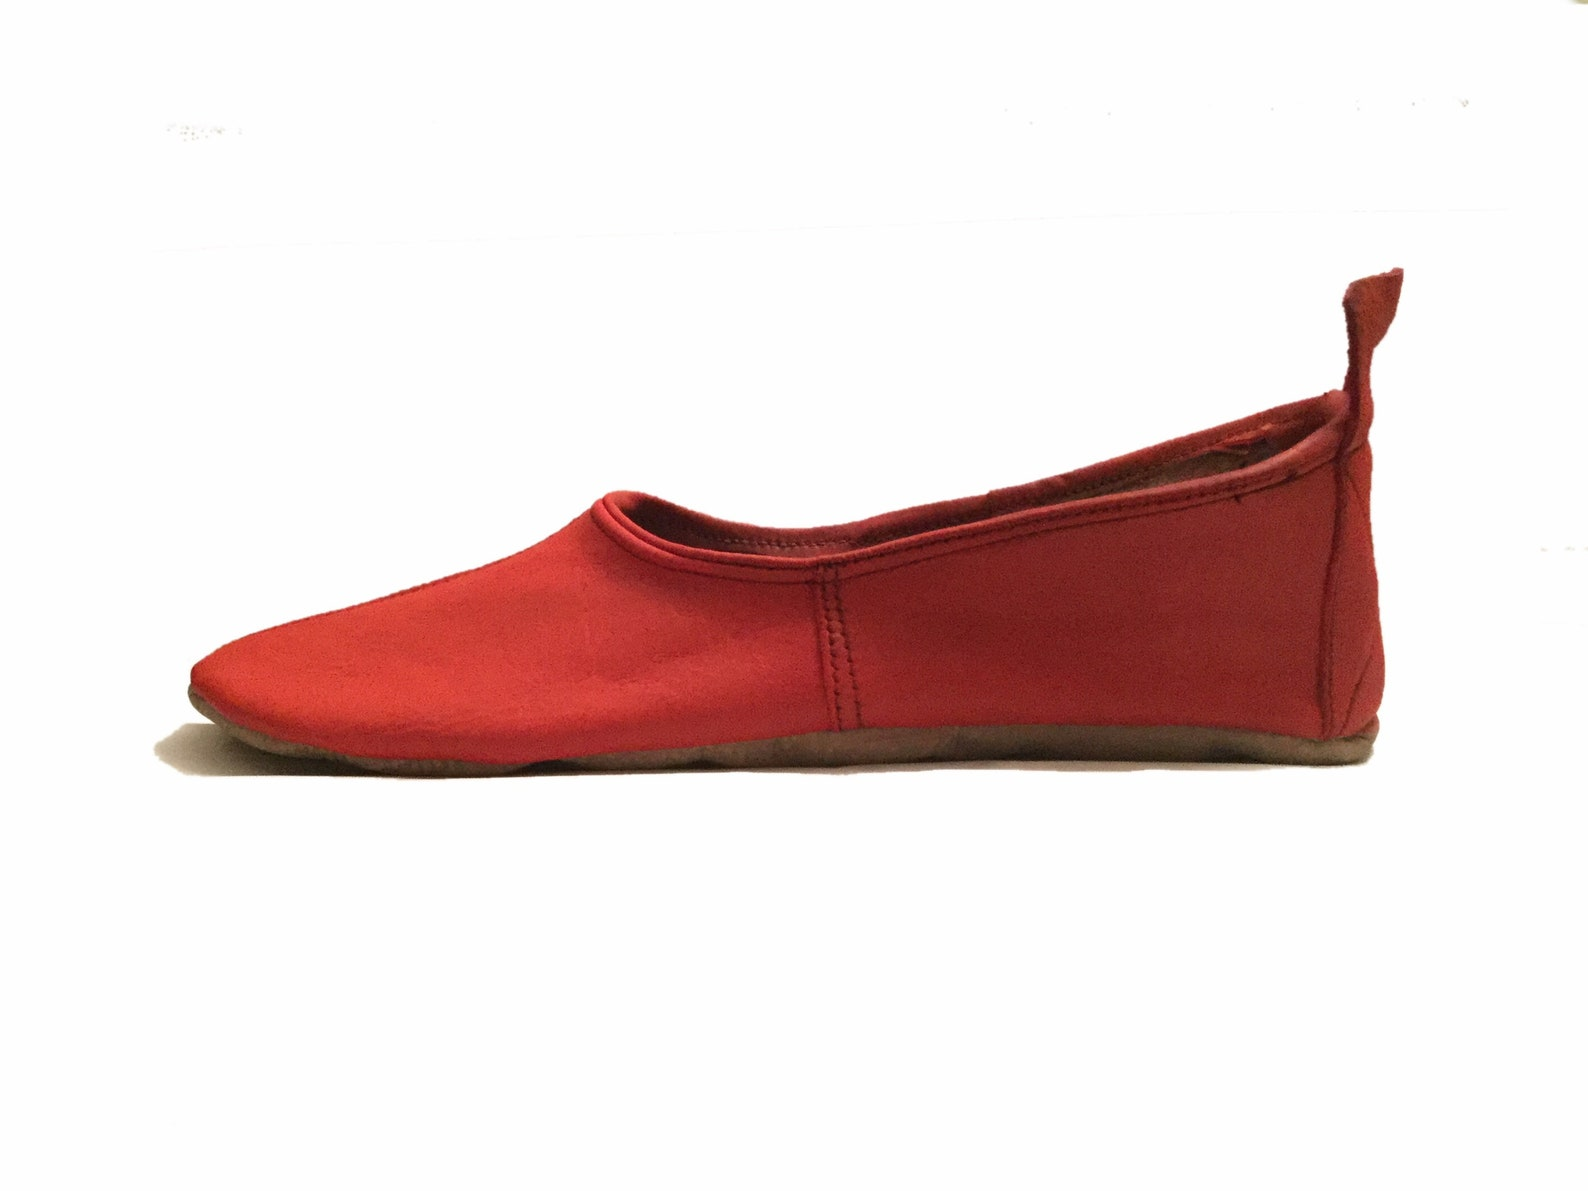 red leather flats, leather slippers, house shoes, gift for her,leather travel shoes, tabi socks ,ballet flats,loafers,